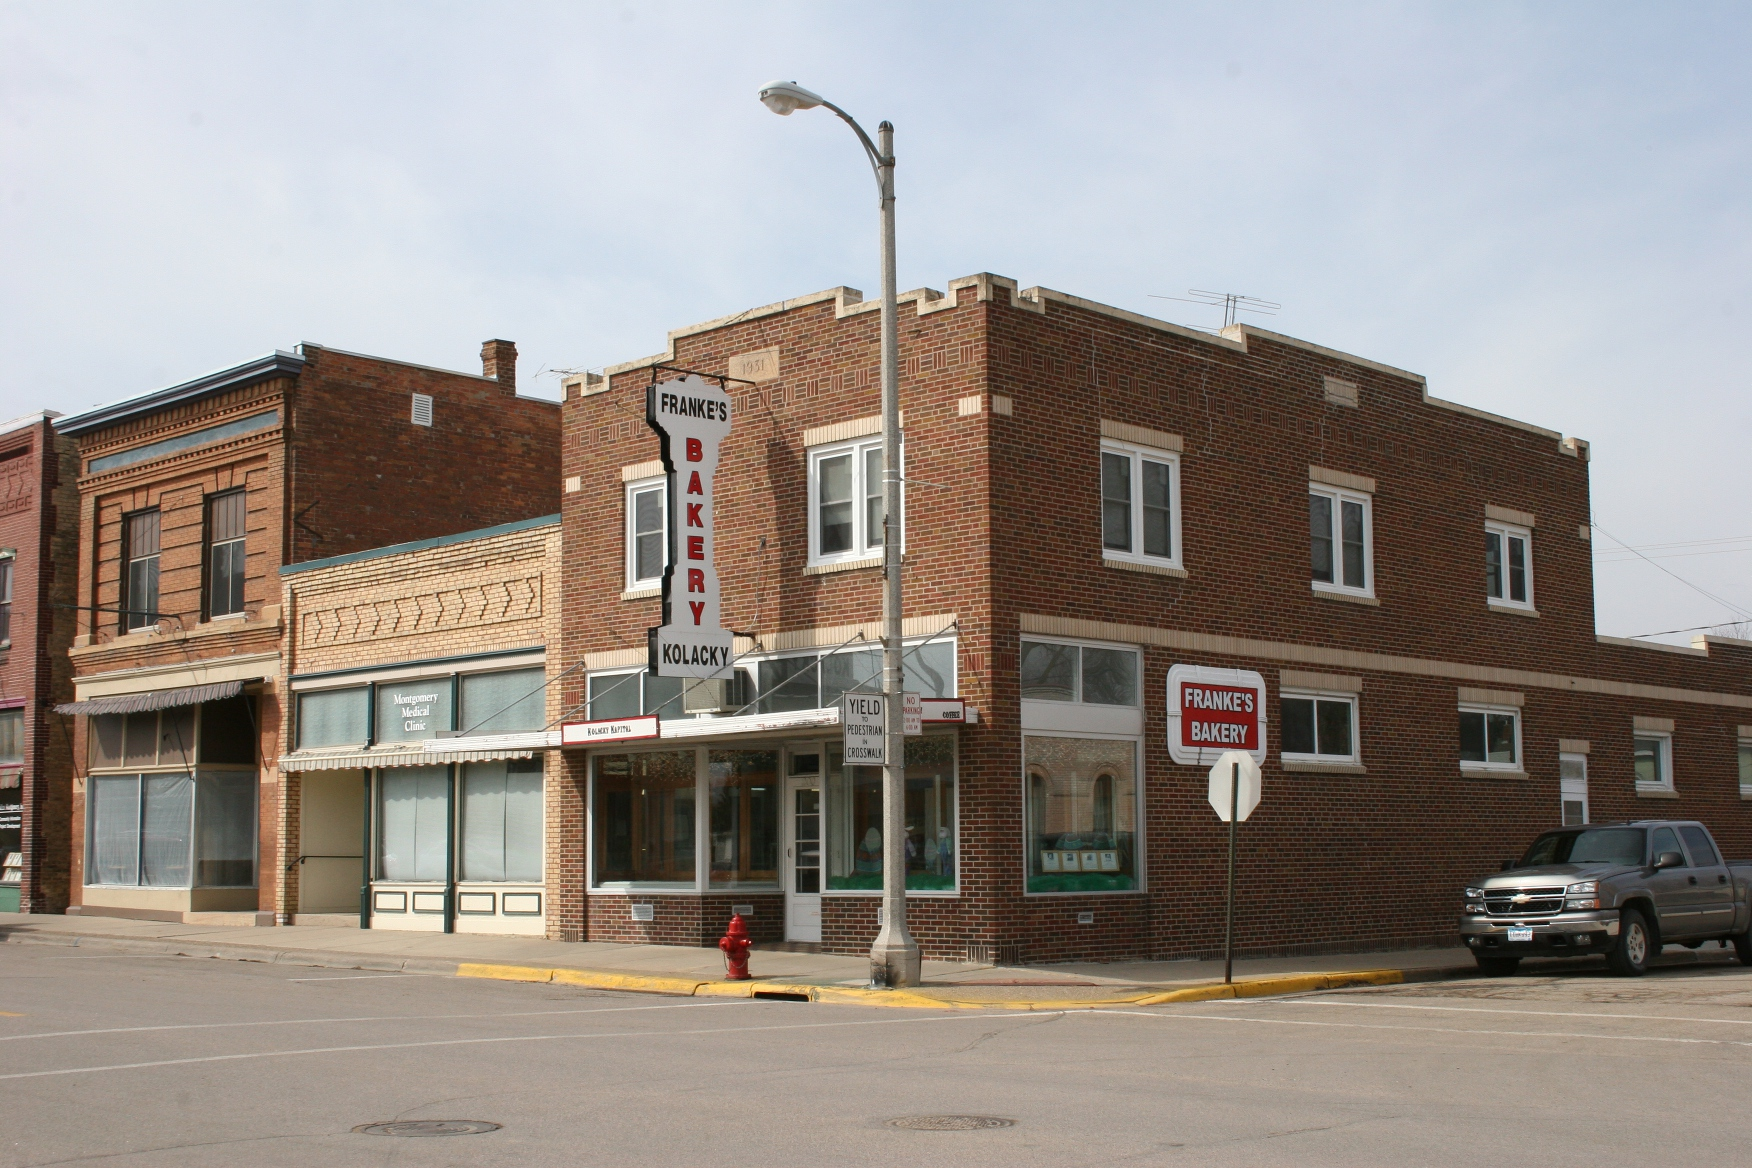 Franke's Bakery opened in 1914.